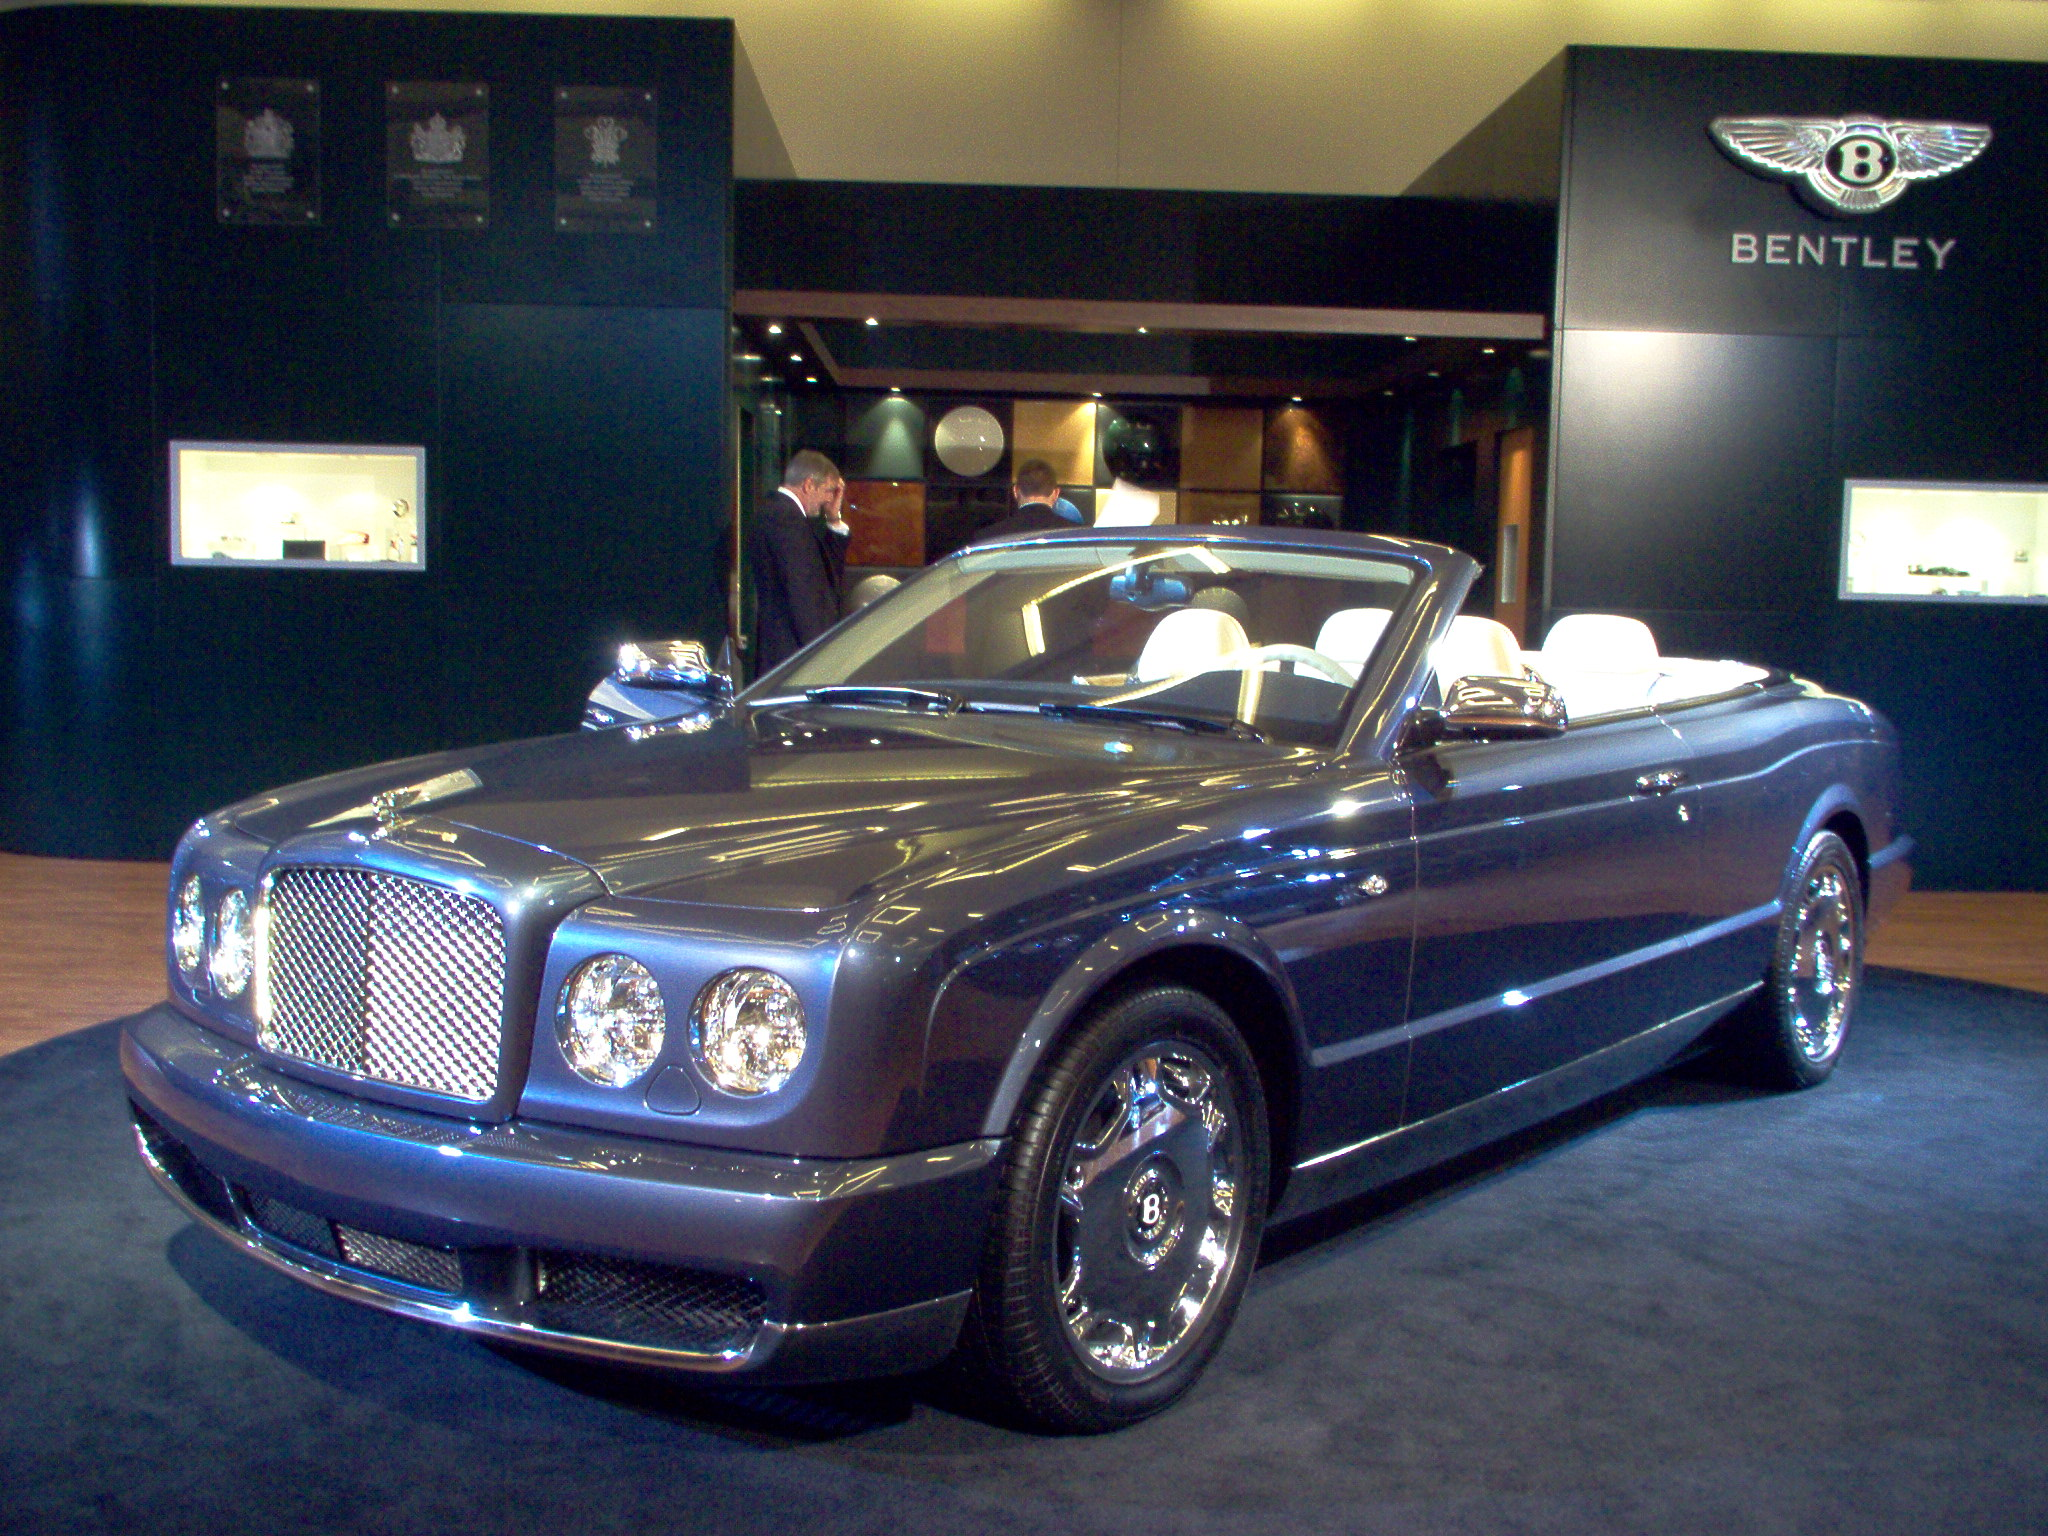 BENTLEY AZURE blue